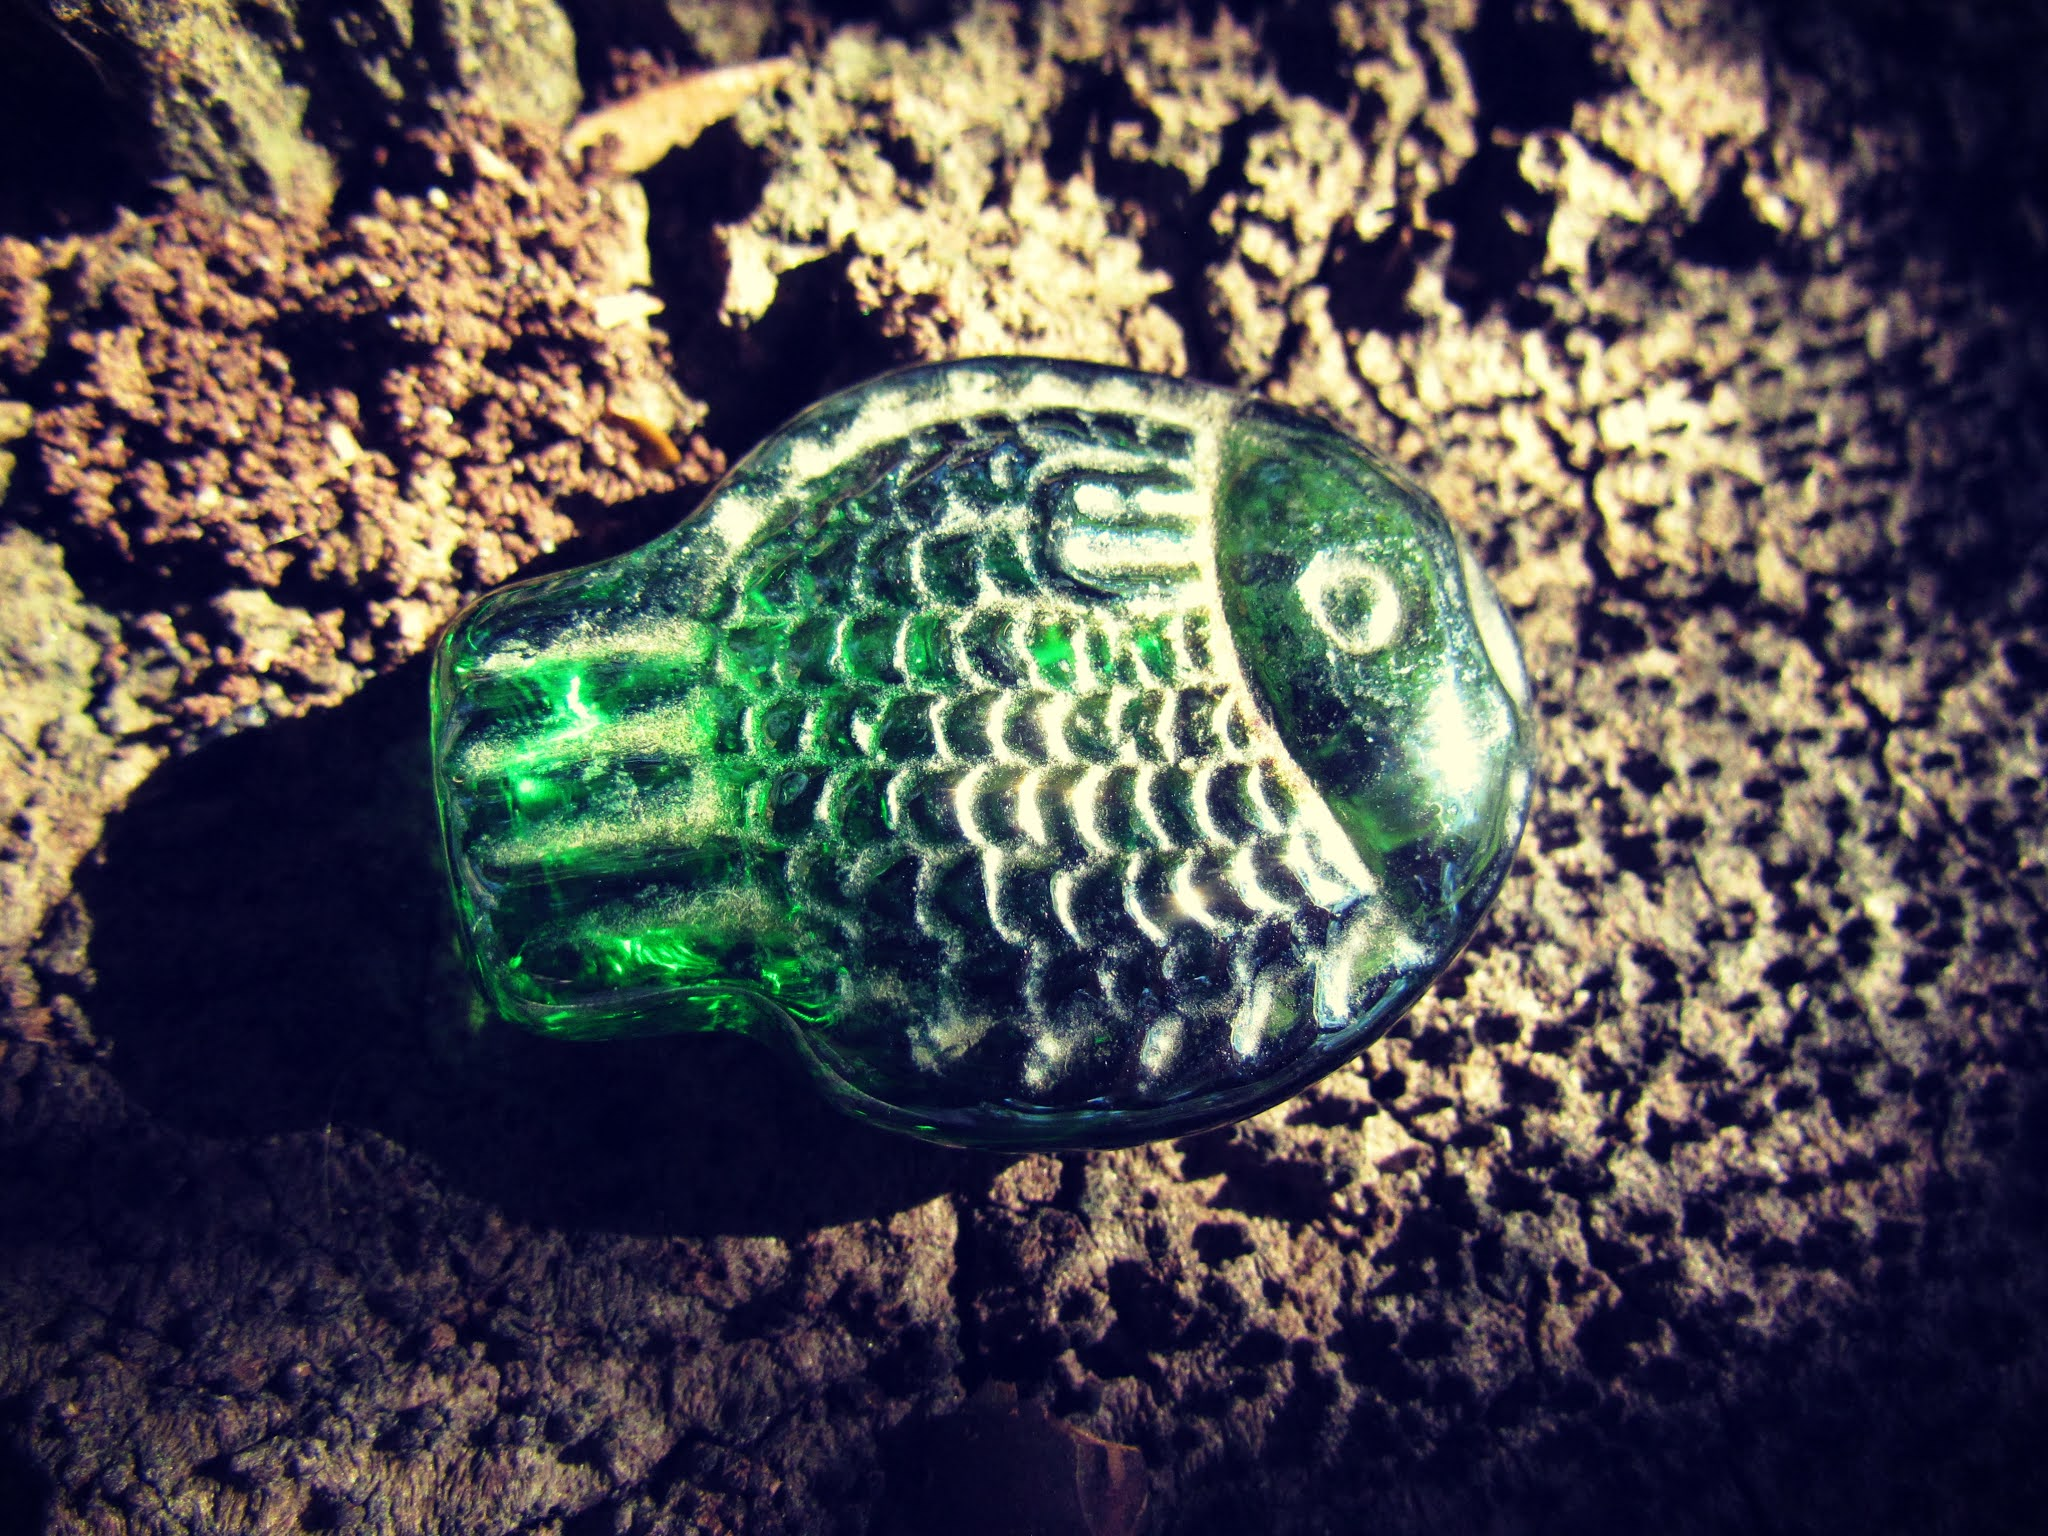 Green sea glass fish-shaped glass, forest finds, hiking magic in the woods, hunting, gathering, fish pisces sign